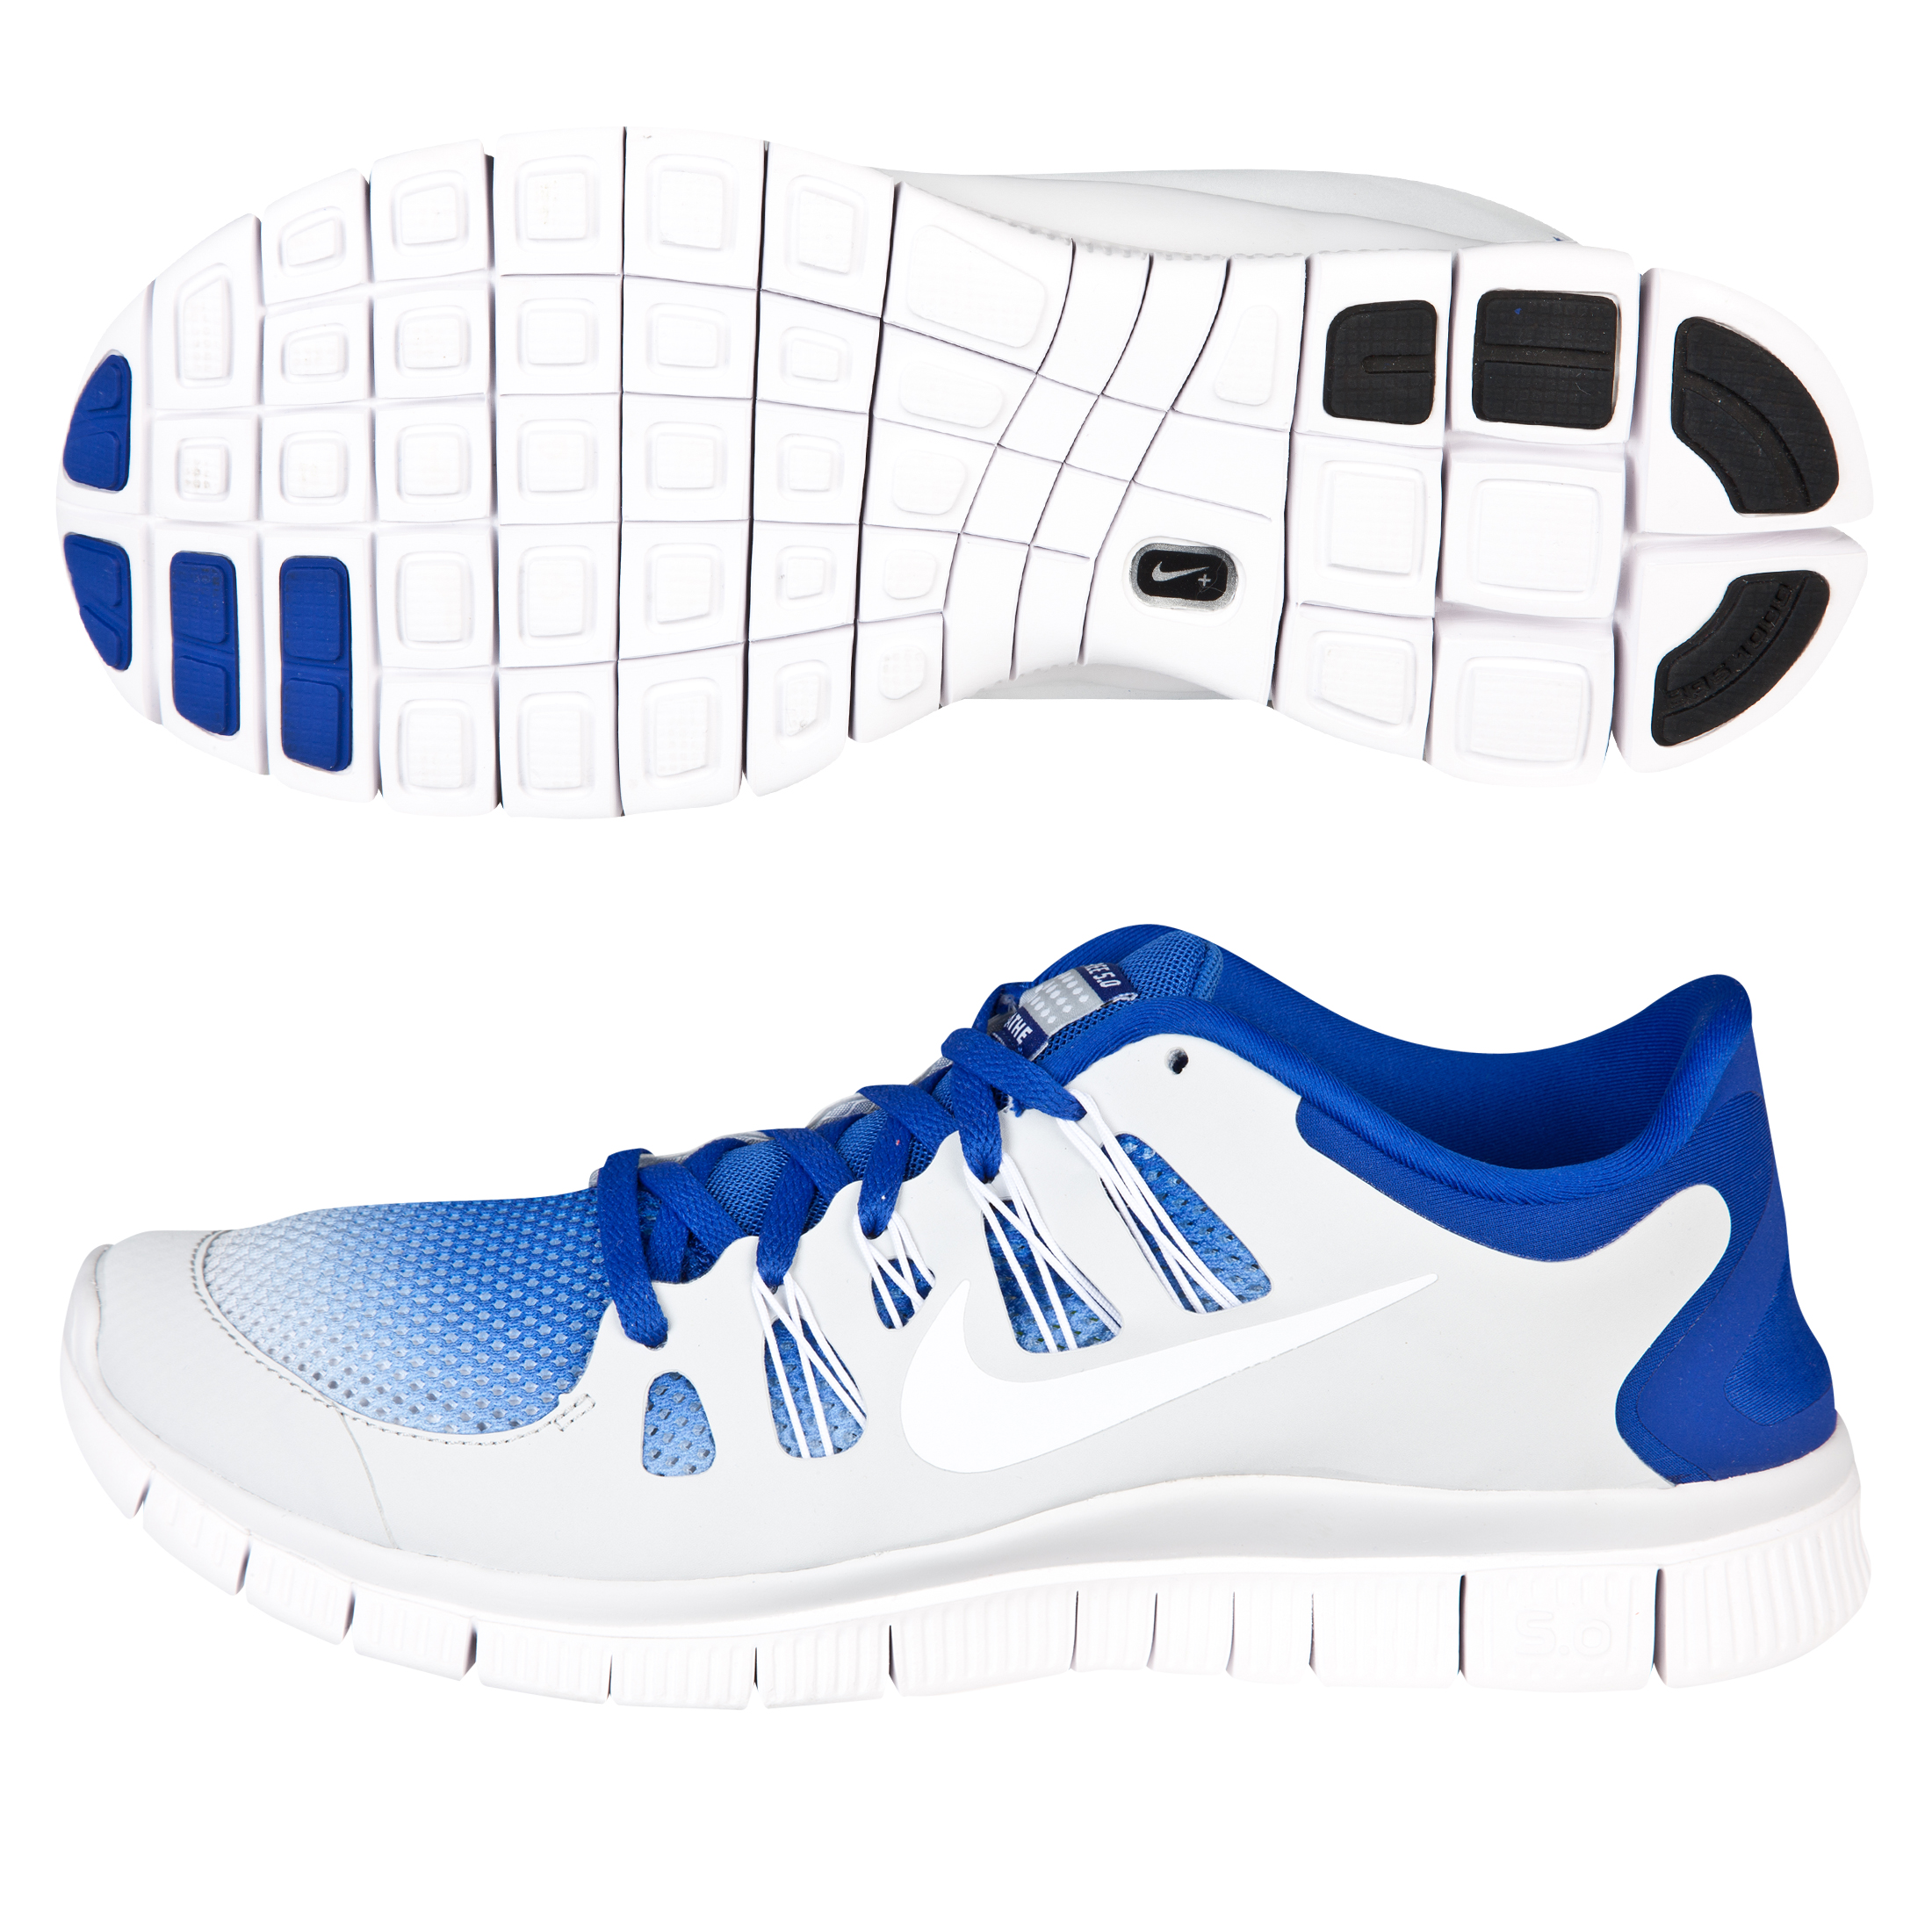 Nike Free 5.0+ (Breathe) Trainer- Hyper Blue/White/Pure Platinum